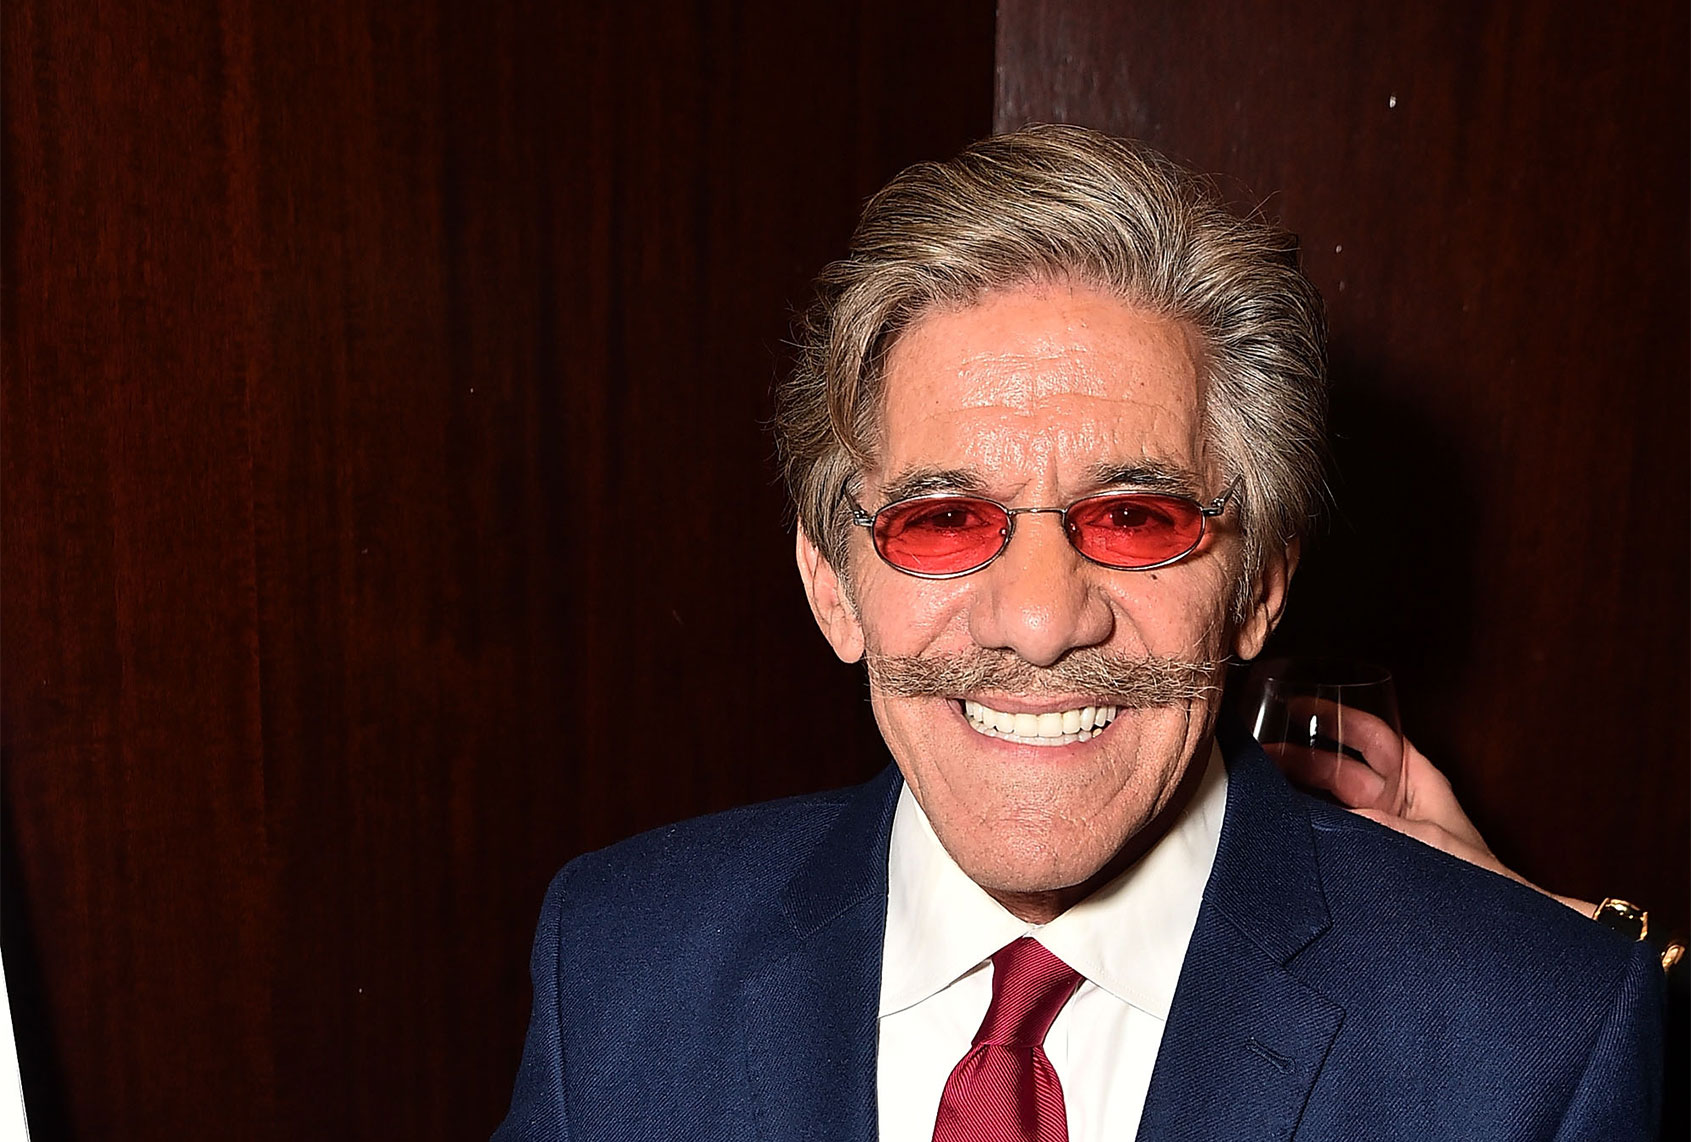 Geraldo Rivera wants to name COVID-19 vaccine after Trump to make him feel better about the election thumbnail